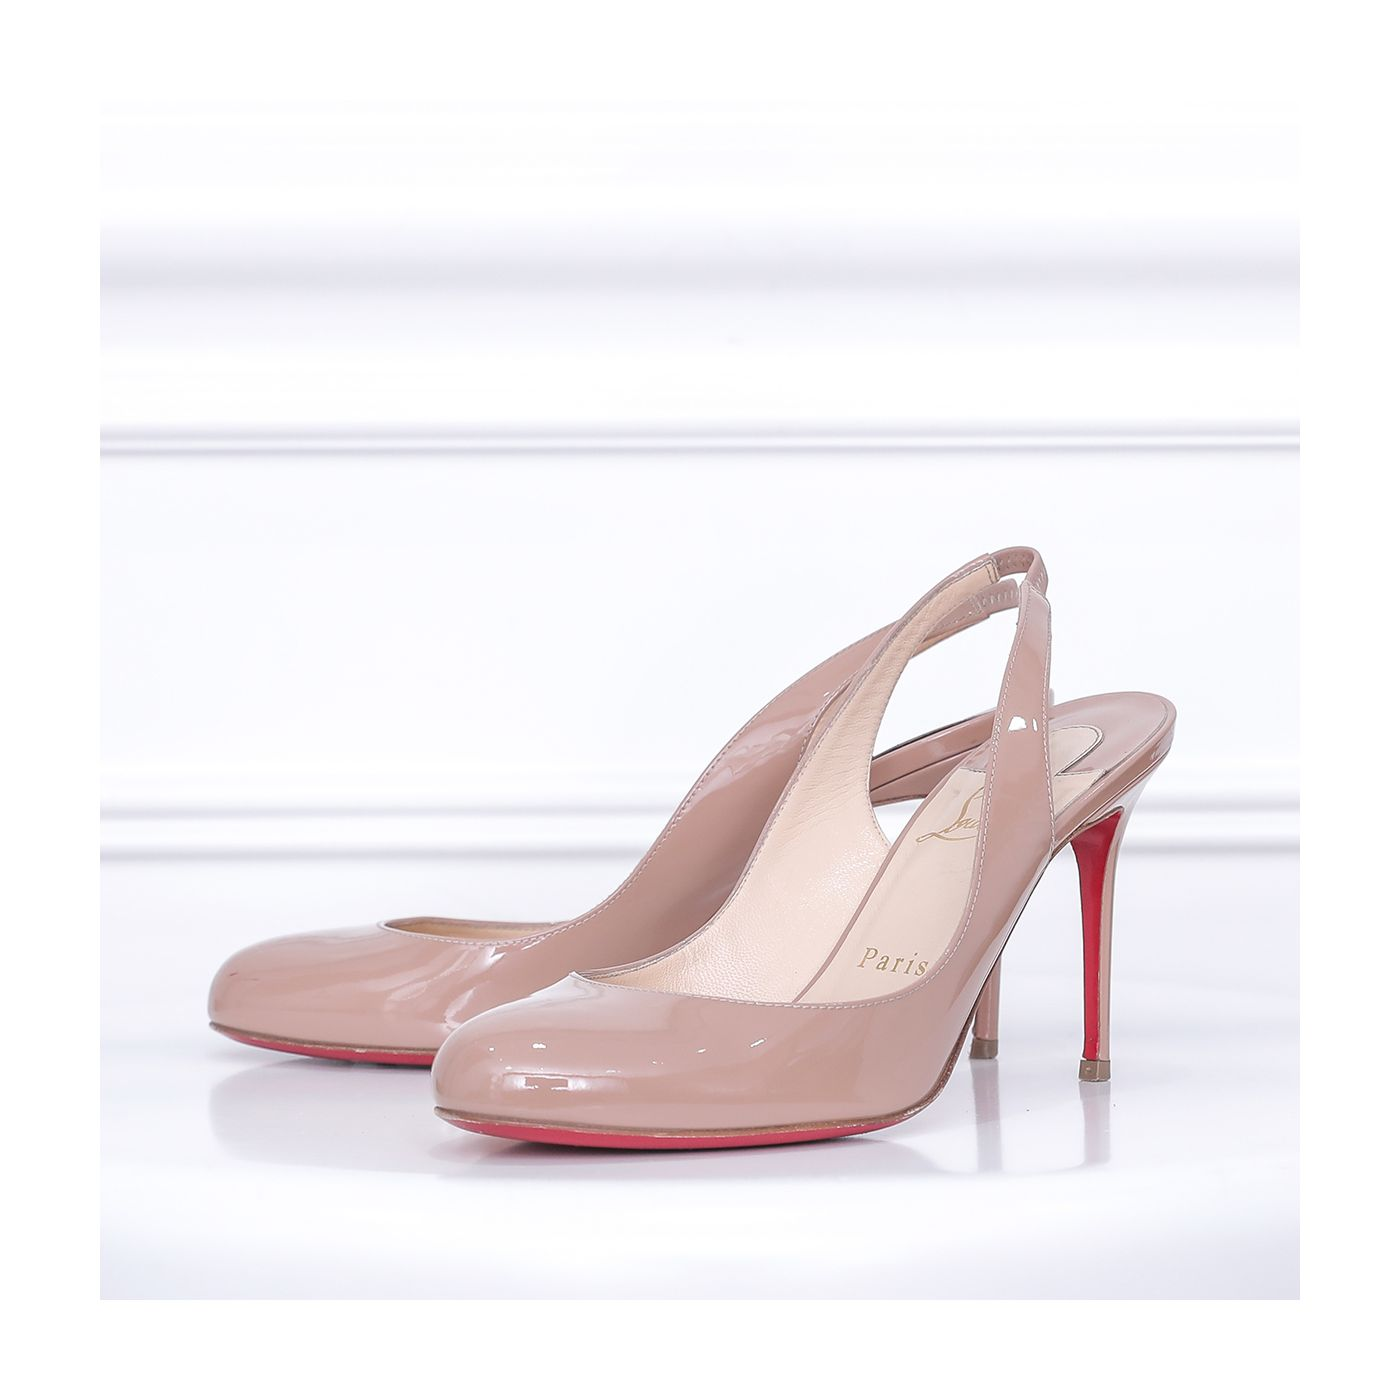 Christian Louboutin Nude Simple Slingback Pumps 37